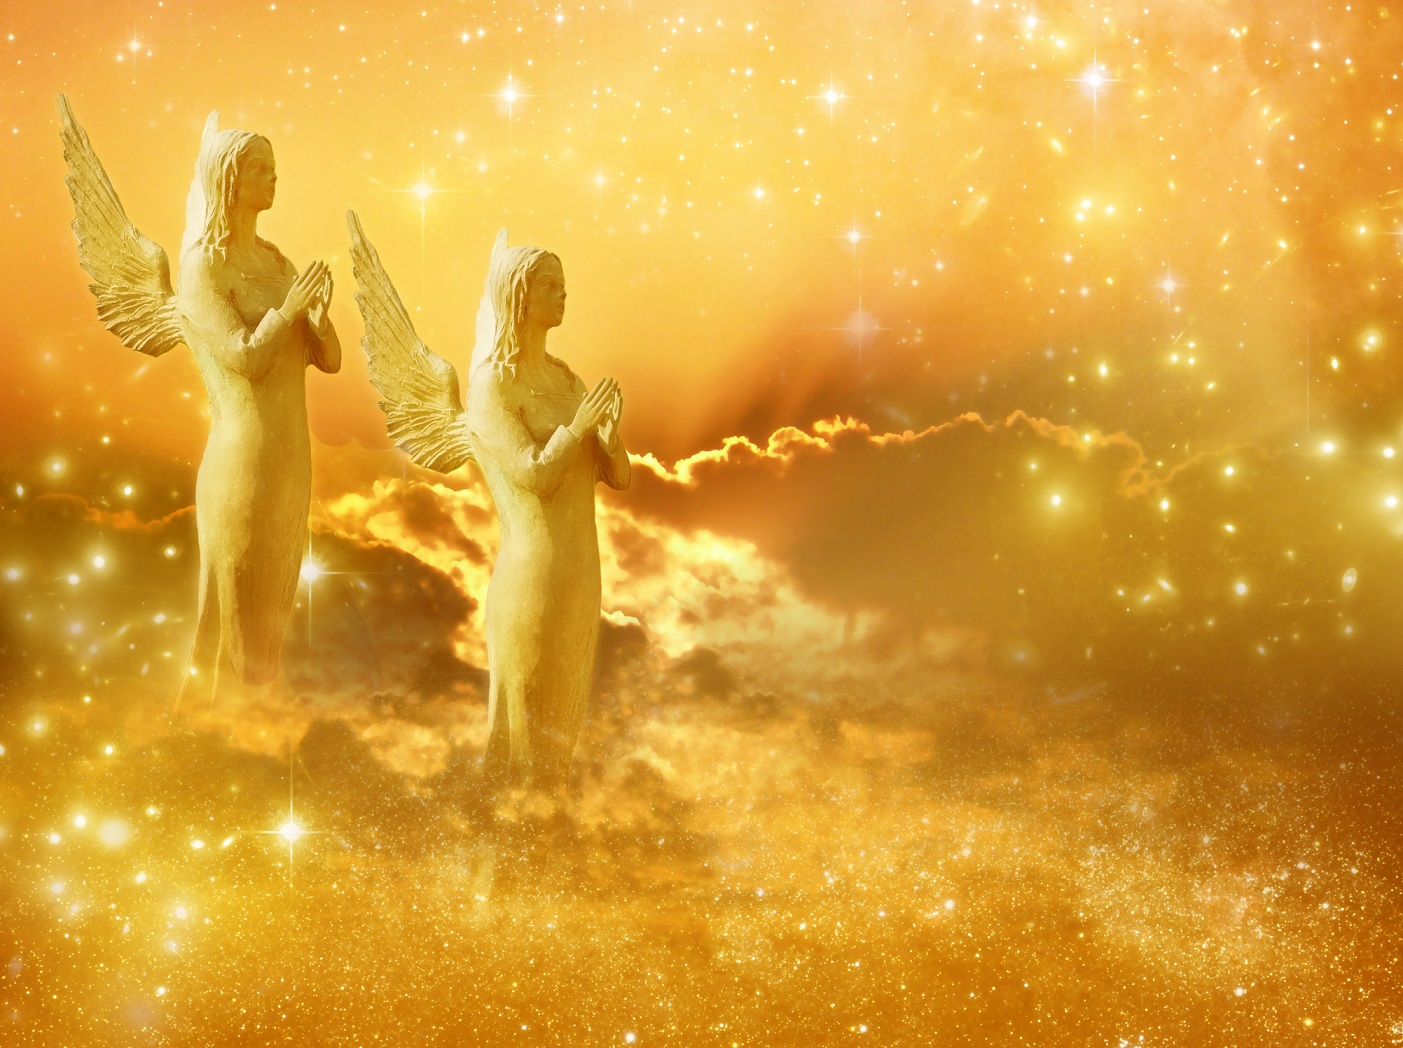 Ep. 1043: How Do Angels Help Us in Daily Life?